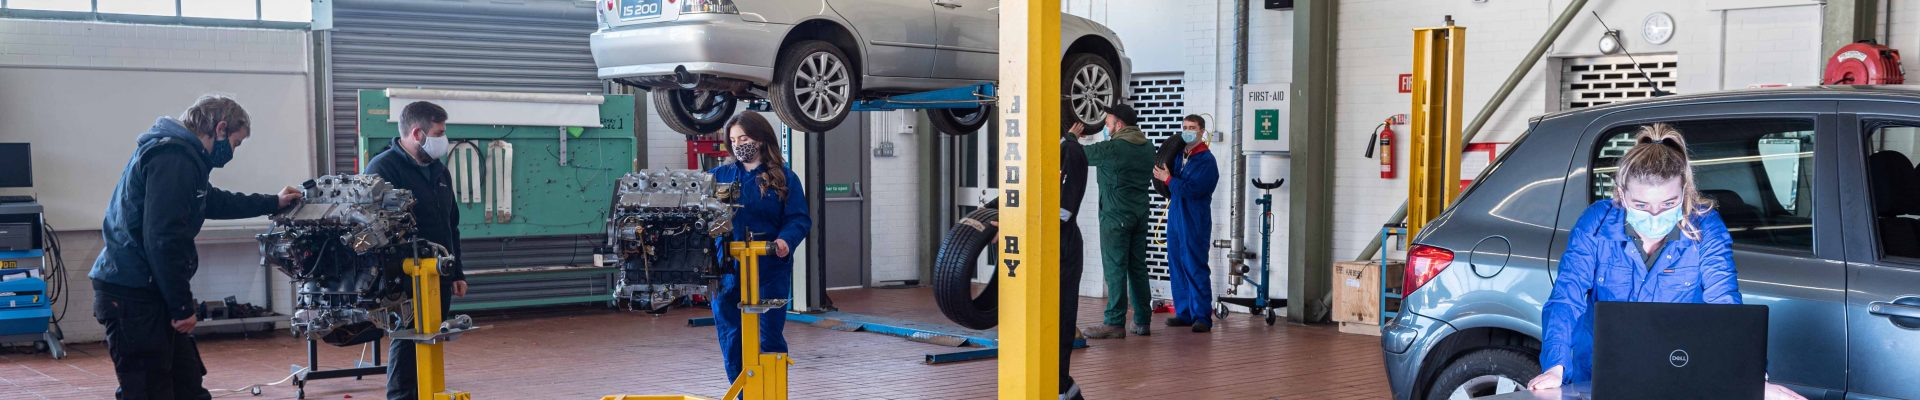 Light vehicle apprentice technicians in car maintenance workshop